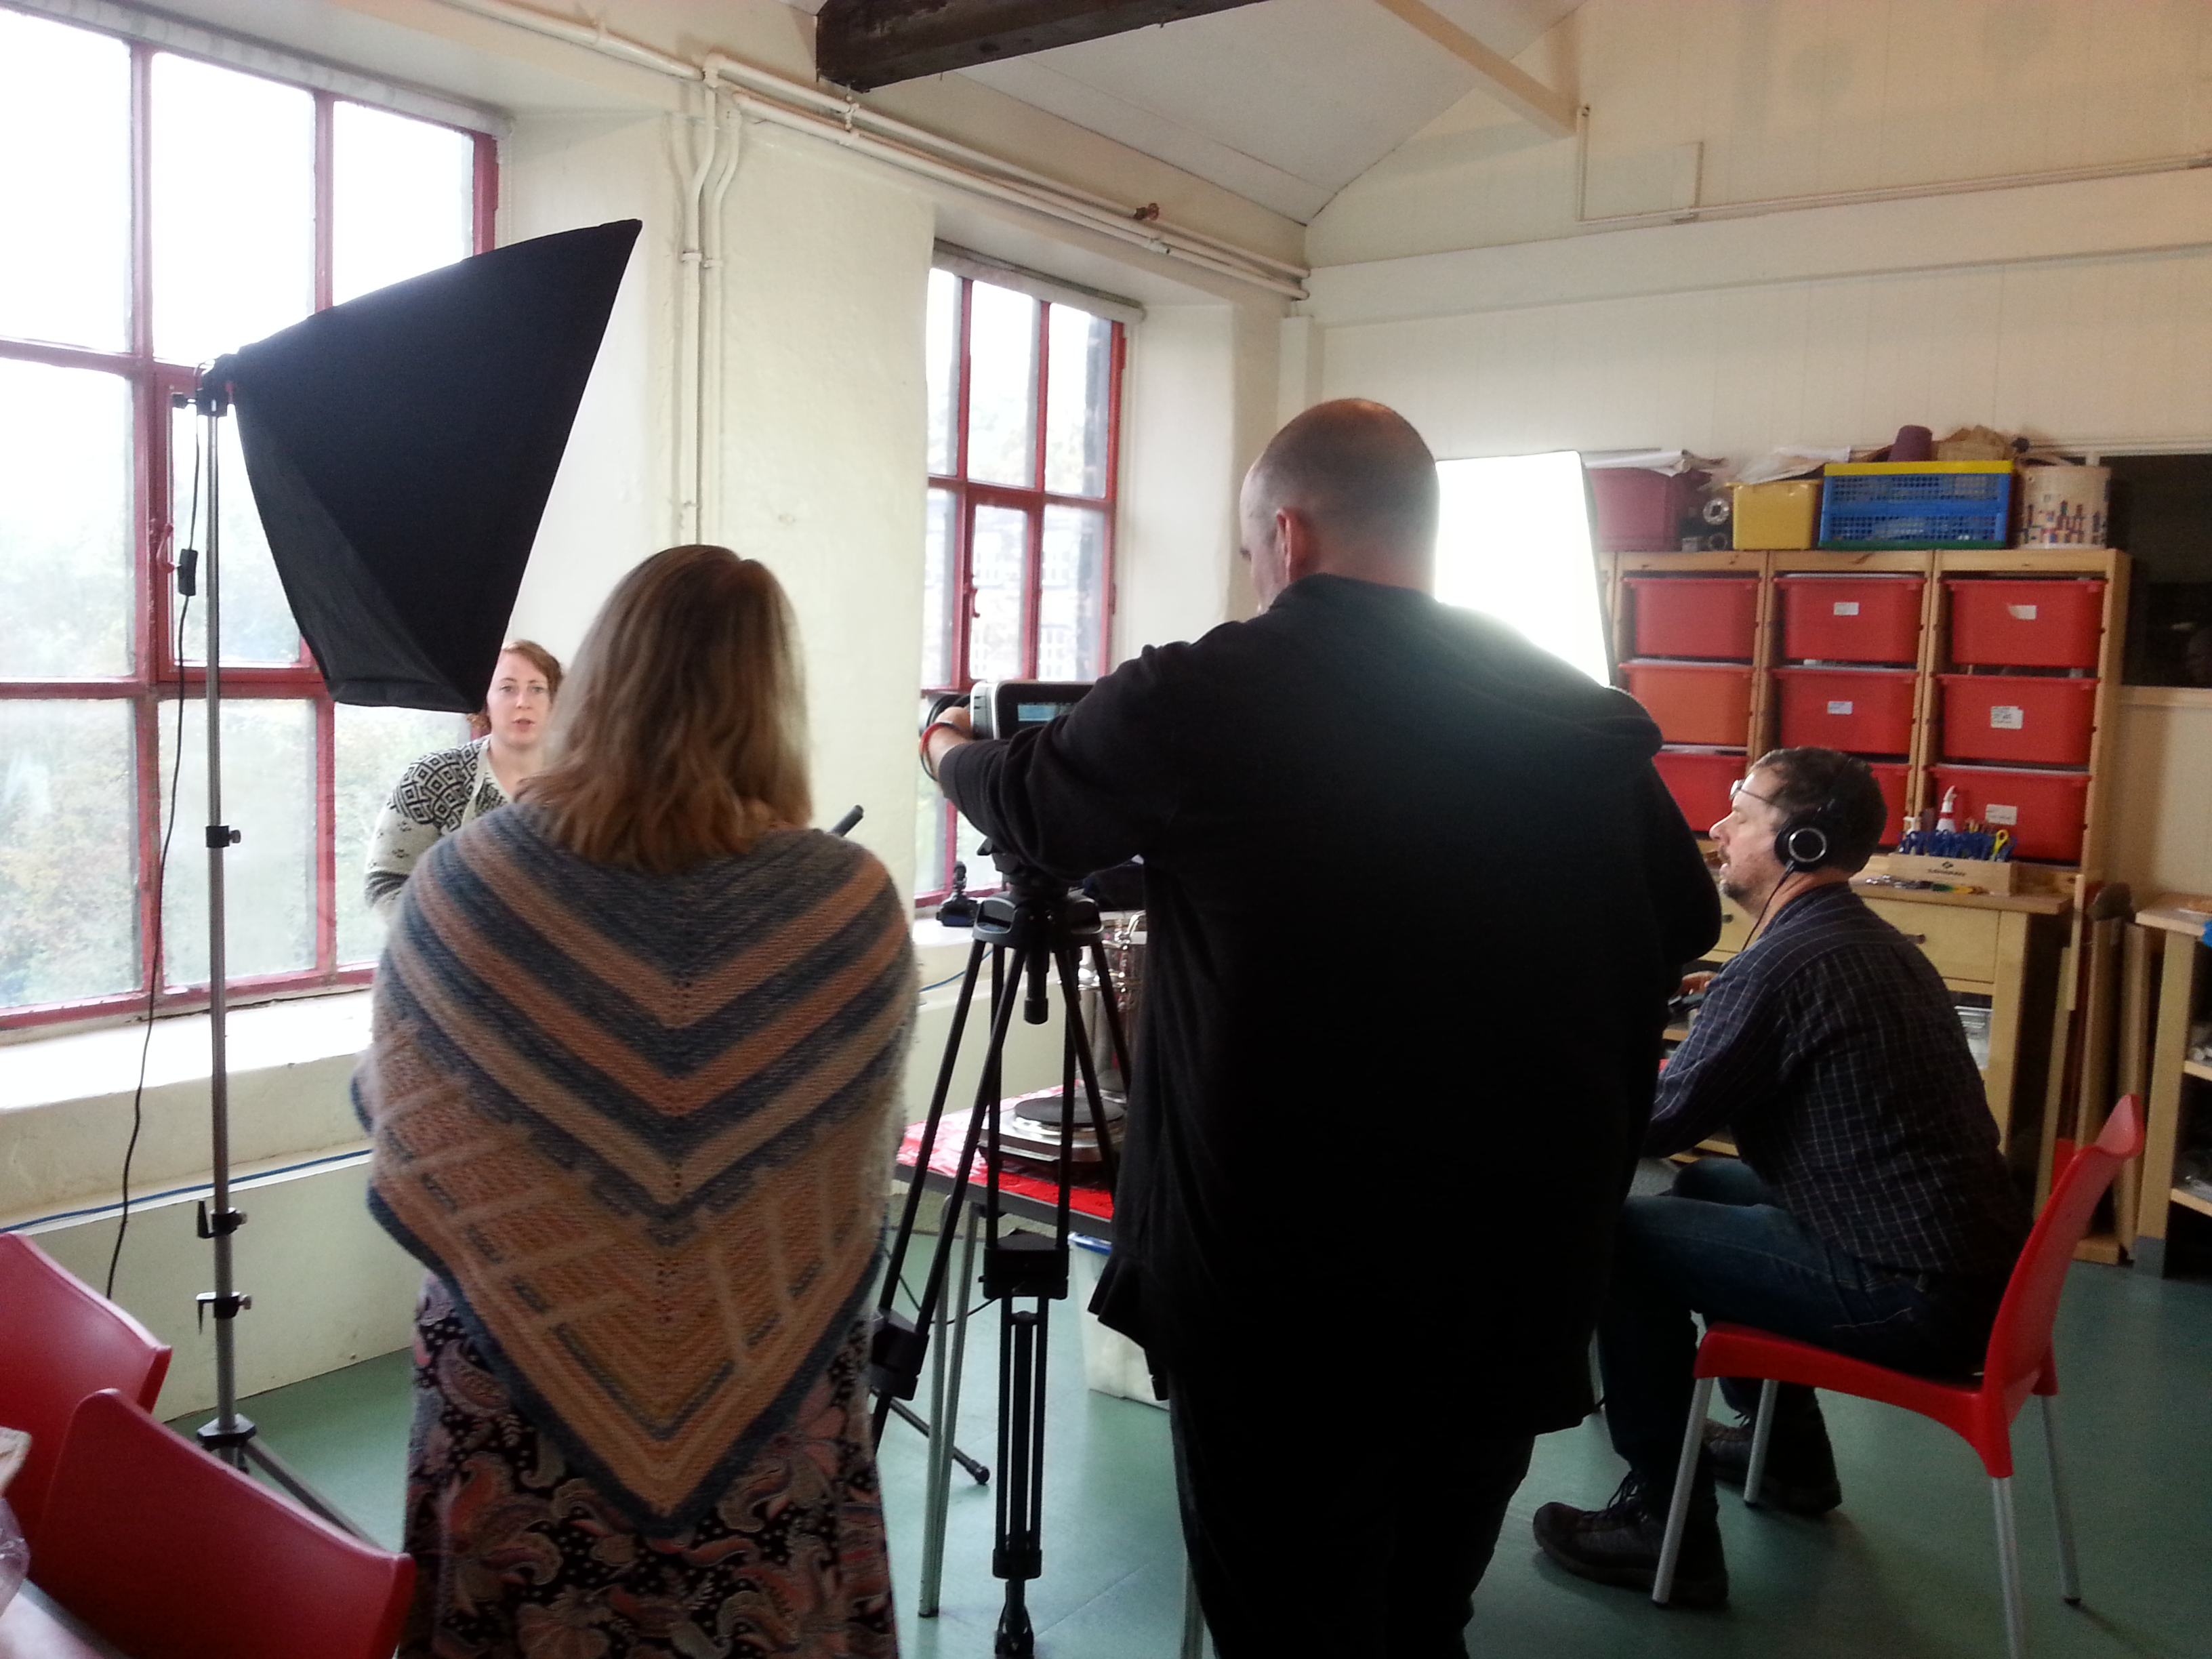 Armley Mills - Wm. Gott dye recipe book exhibition filming